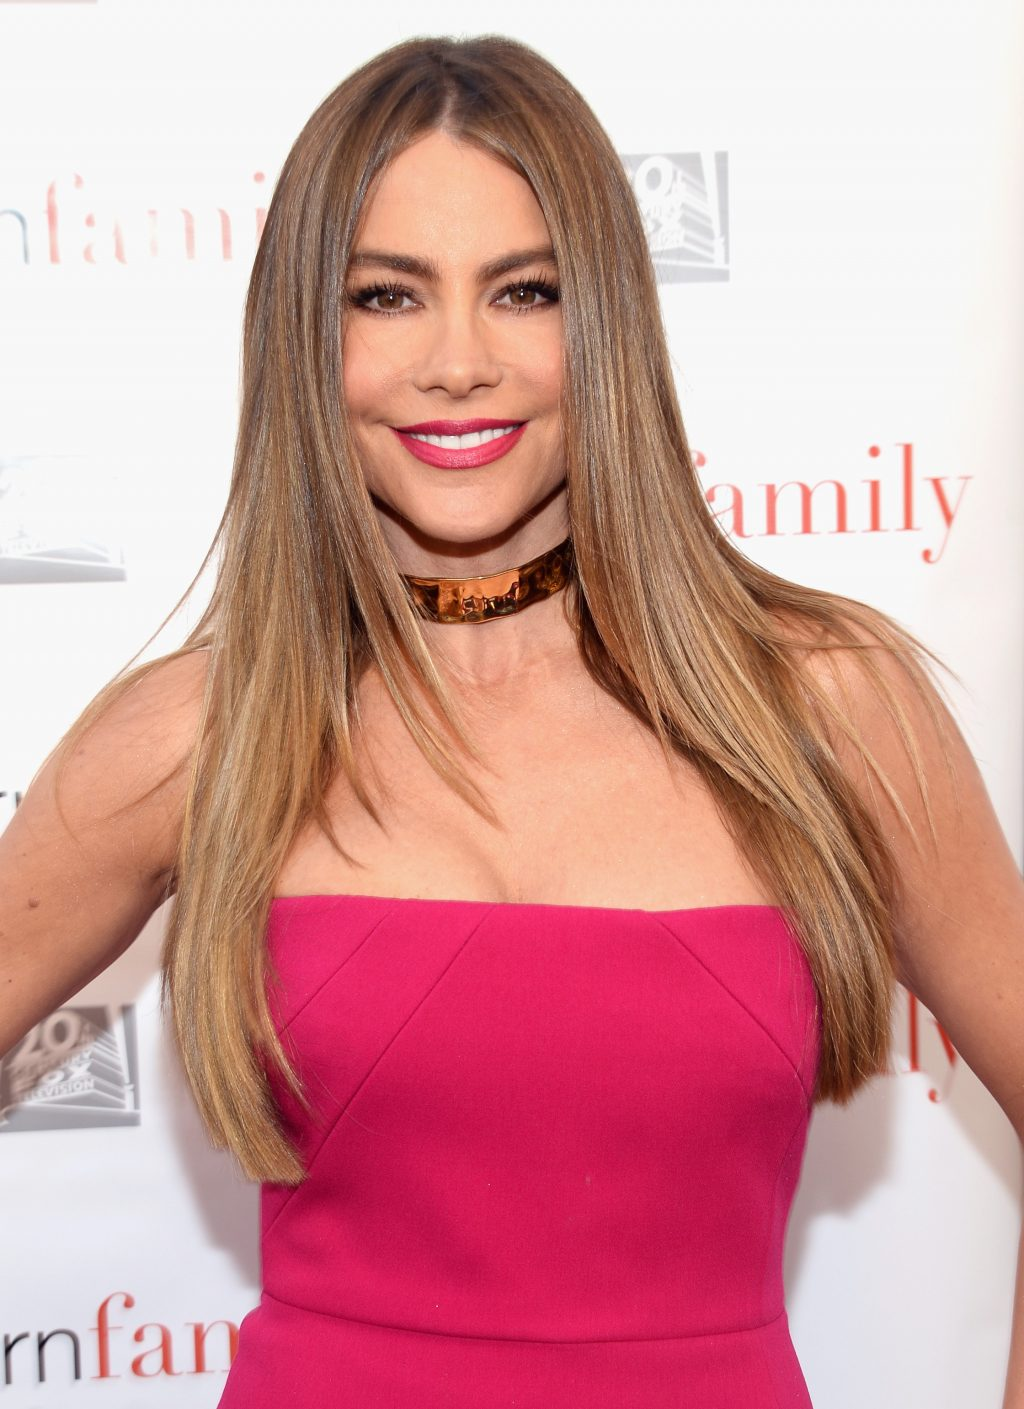 Sofia Vergara's Best Beauty Looks – Vote for Your Favorite